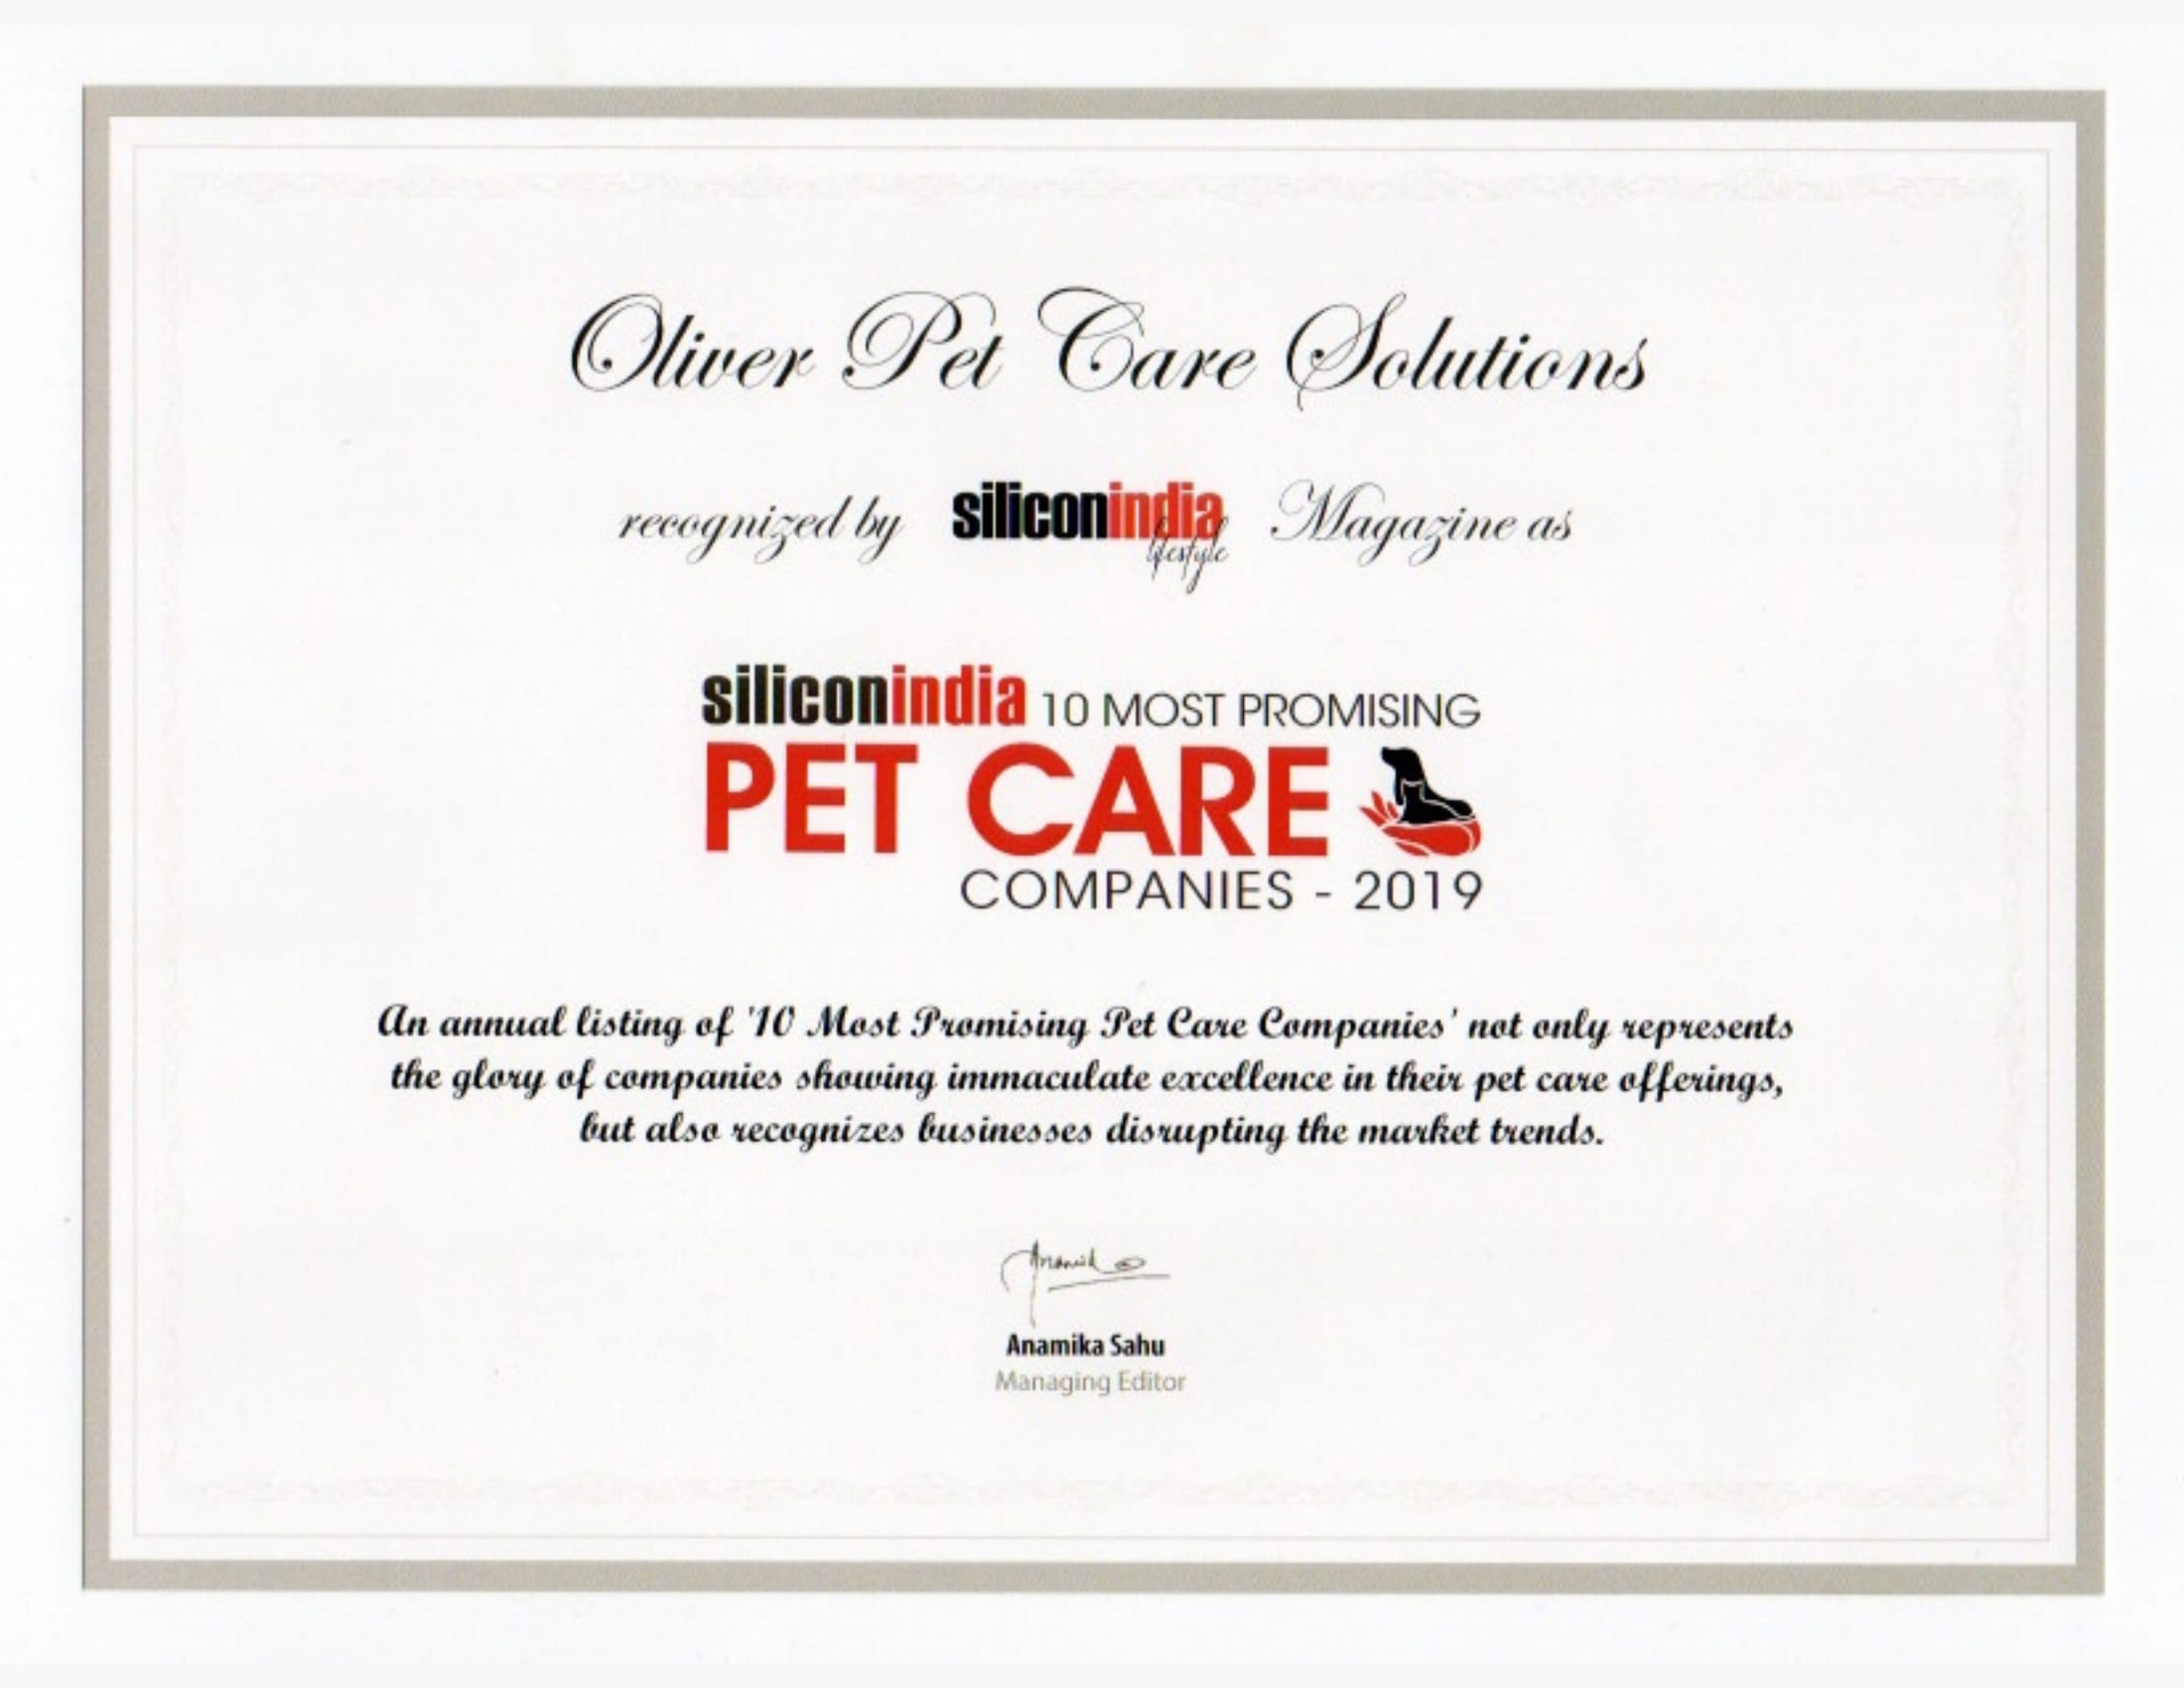 Silicon india Pet Care